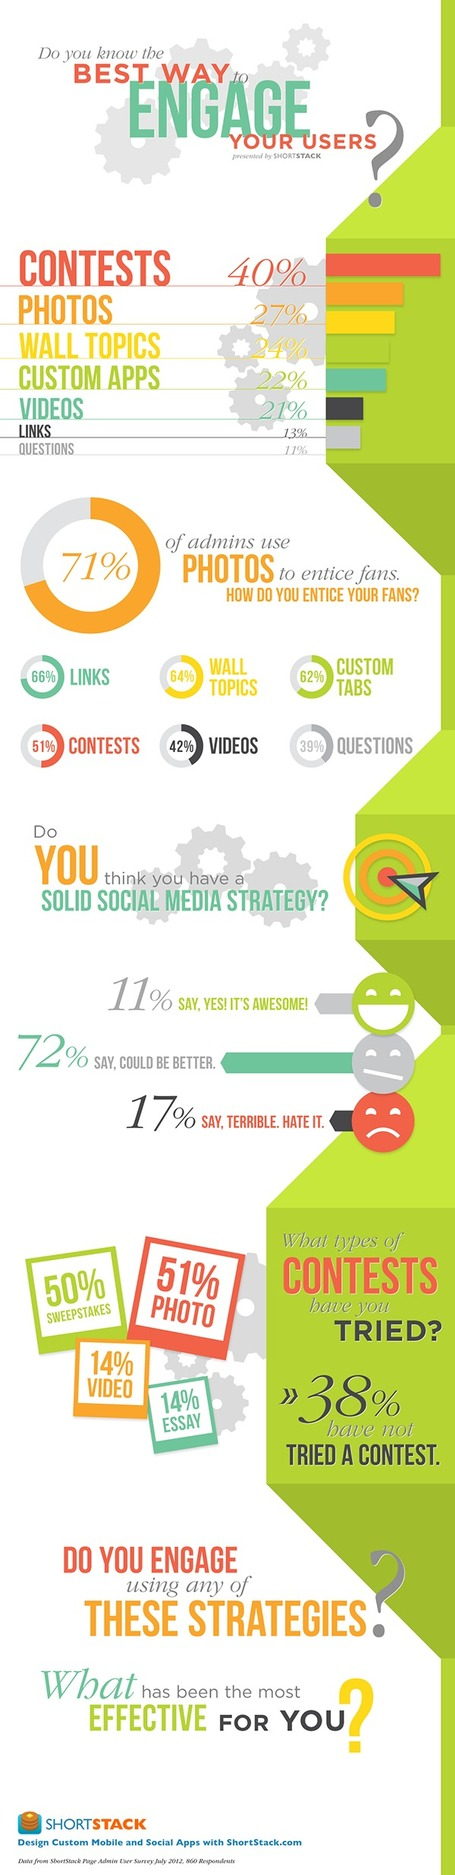 What Are The Best Ways To Engage Social Media Users? [INFOGRAPHIC] | Social Media sites | Scoop.it